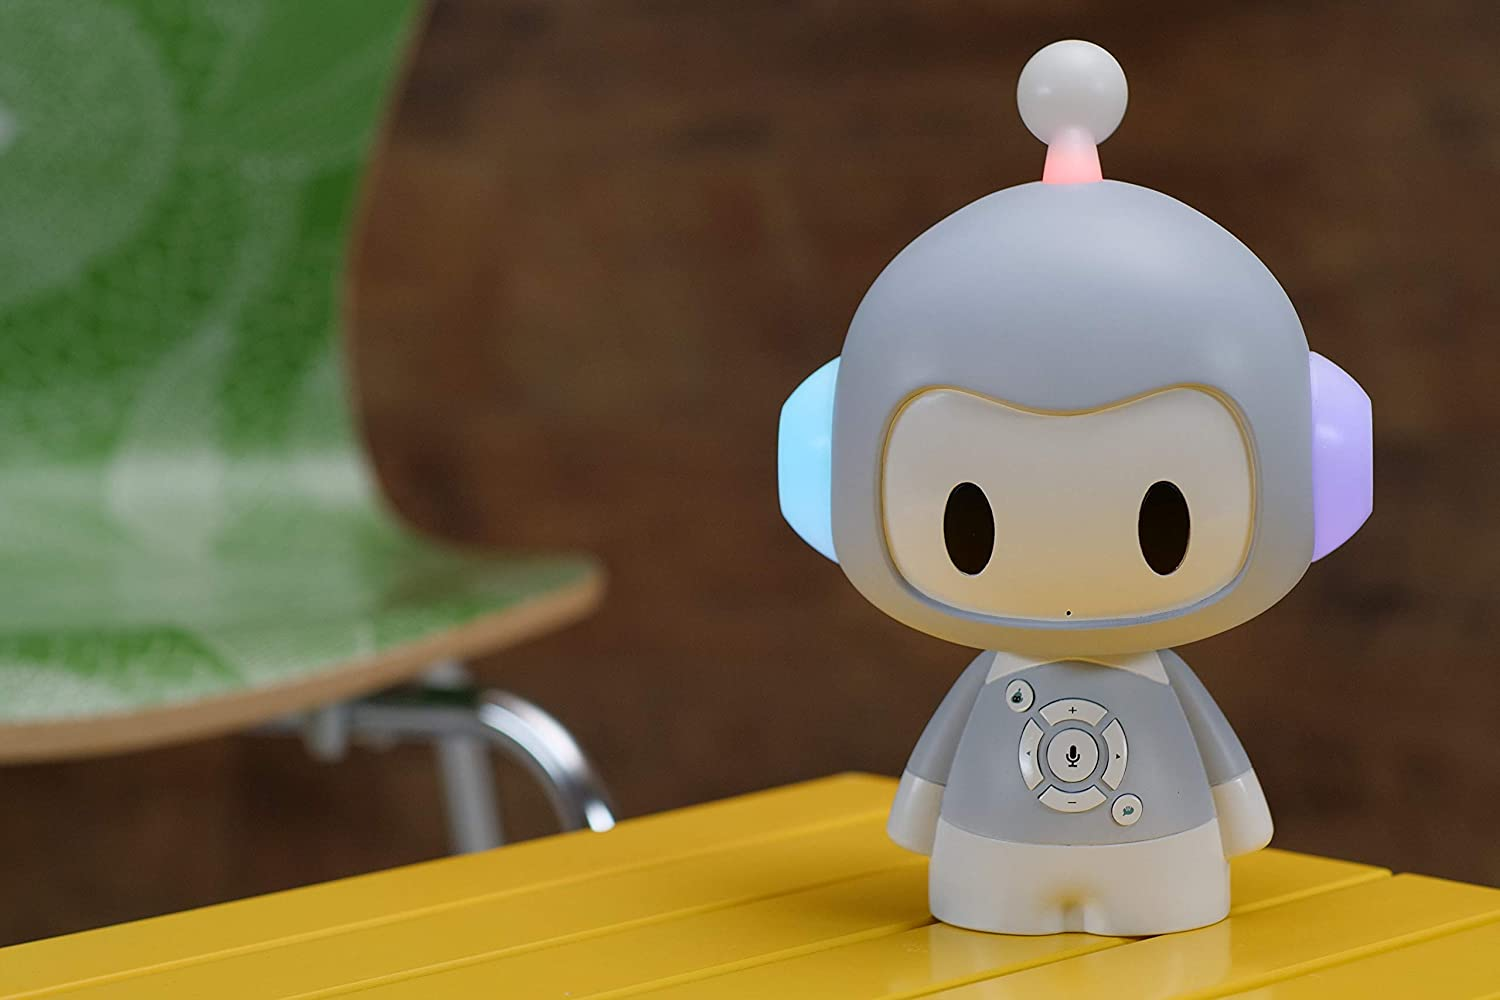 Smart Storyteller//Song Singer with Curated Content That Grows with Your Child Pillar Learning Codi AI Smart Educational Robot for Kids